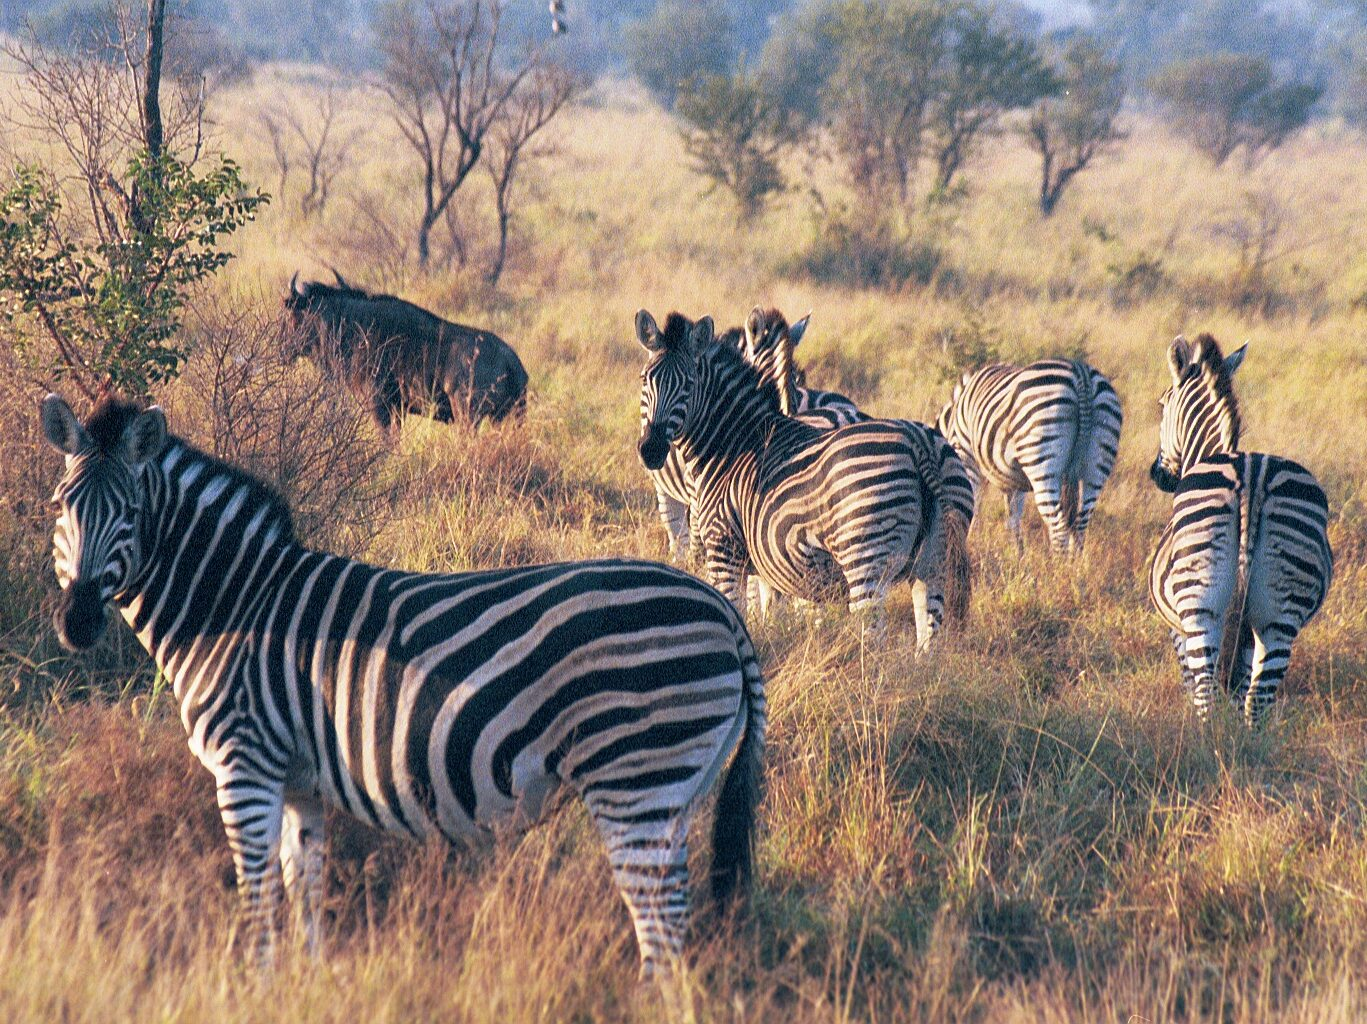 Zebras-South Africa